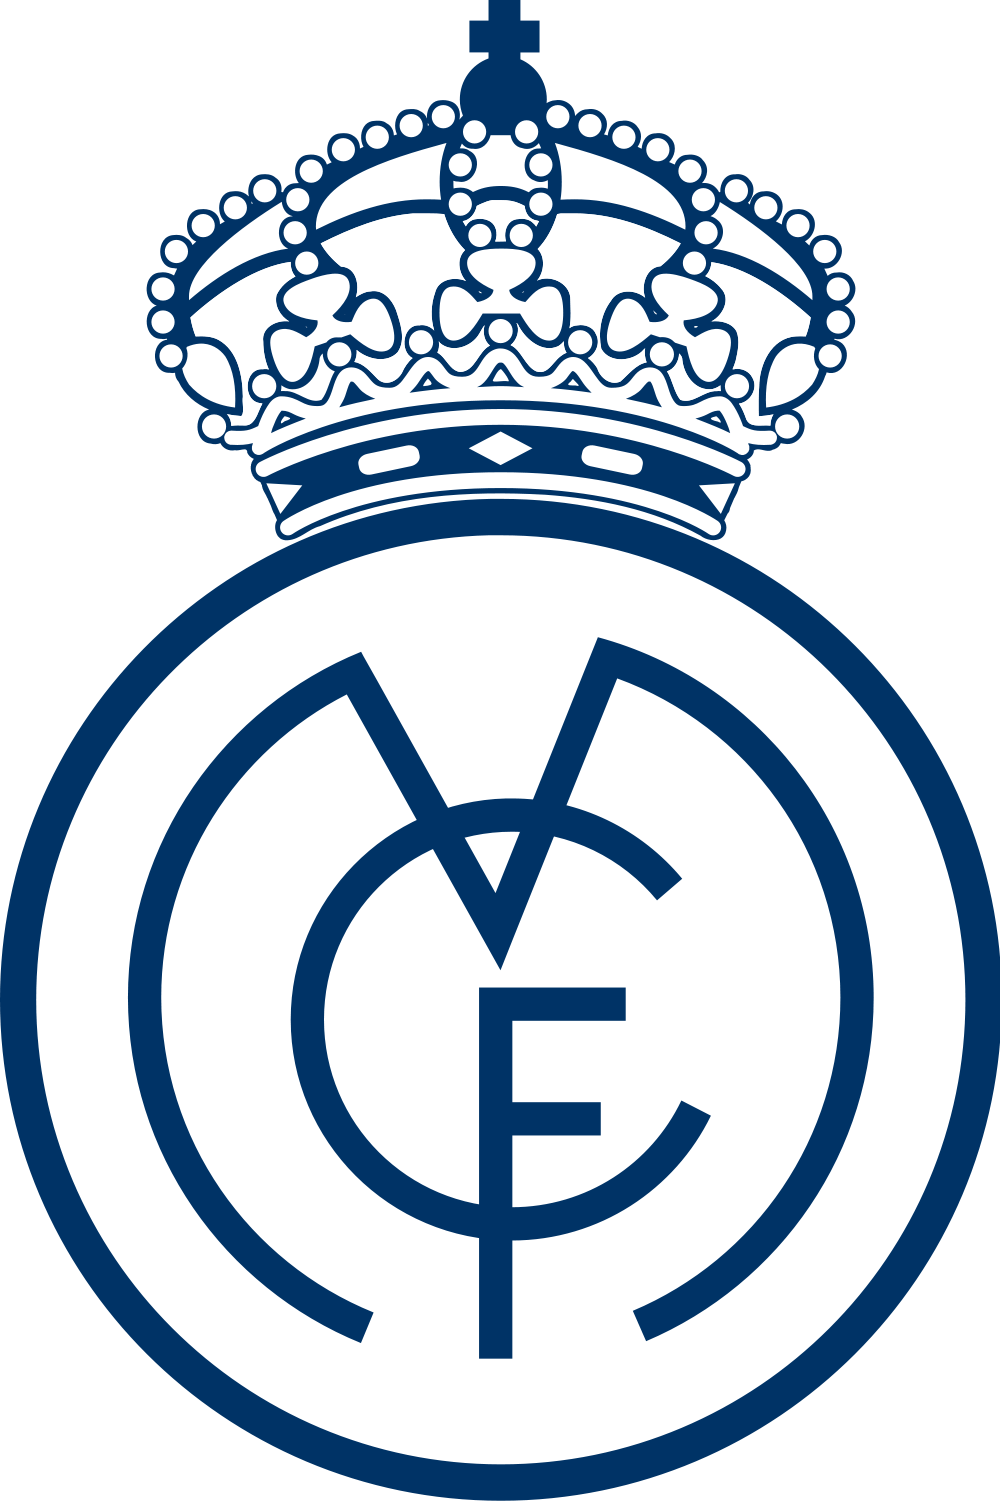 Collection Png Real Madrid Logo Clipart Image Real Madrid Logo 1920 Transparent Png Full Size Clipart 5781291 Pinclipart